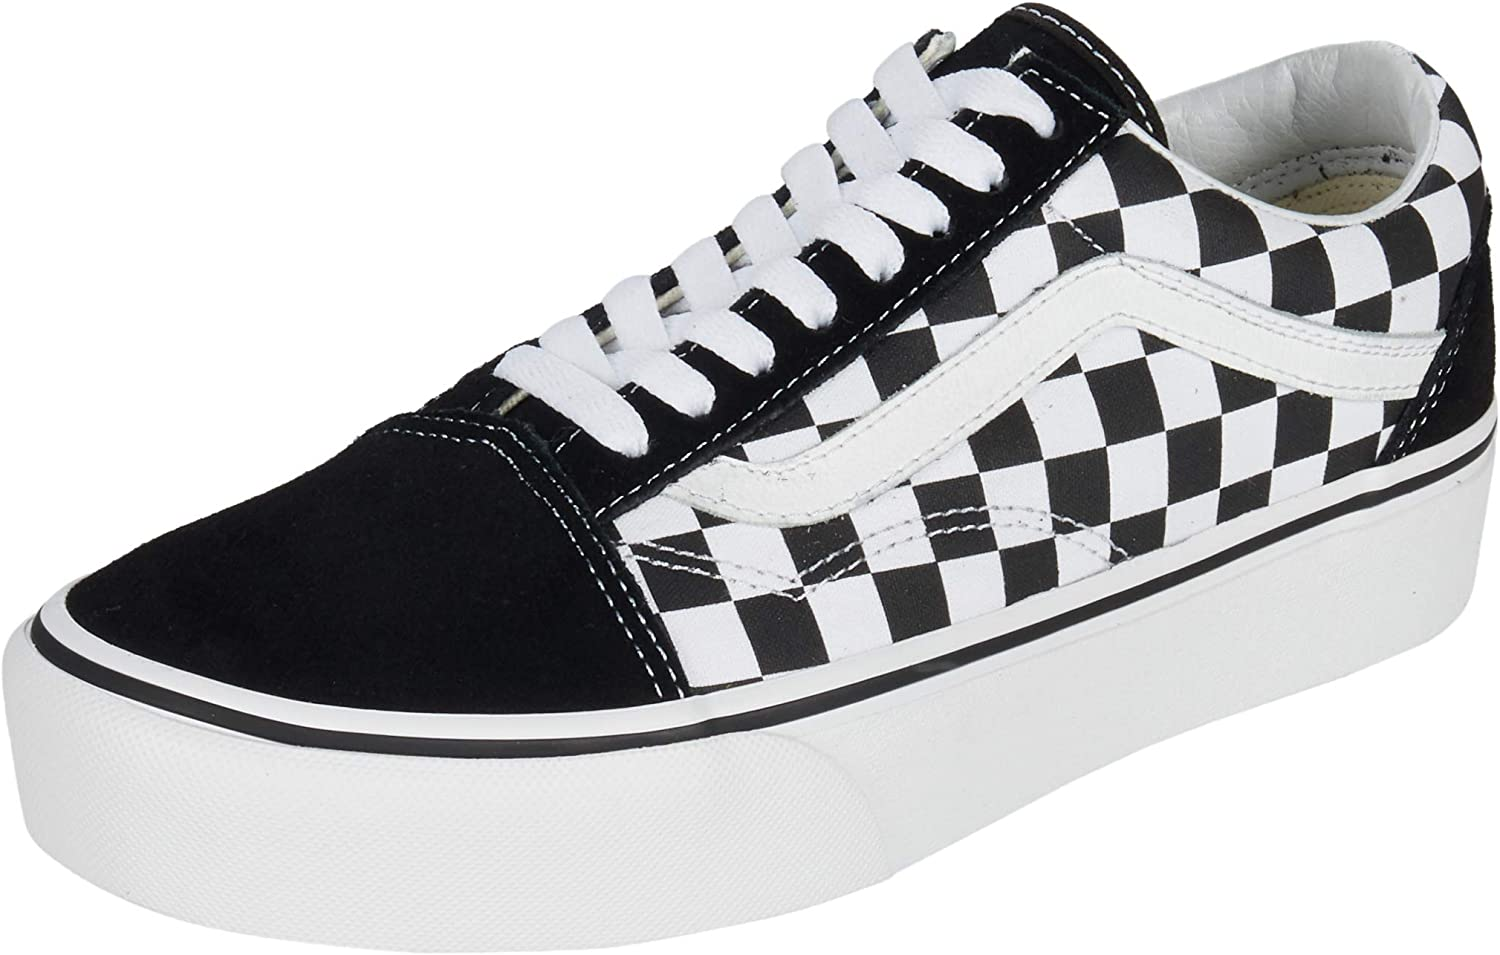 Vans Mens Checkerboard Old Skool Platform Black/True White Sneaker